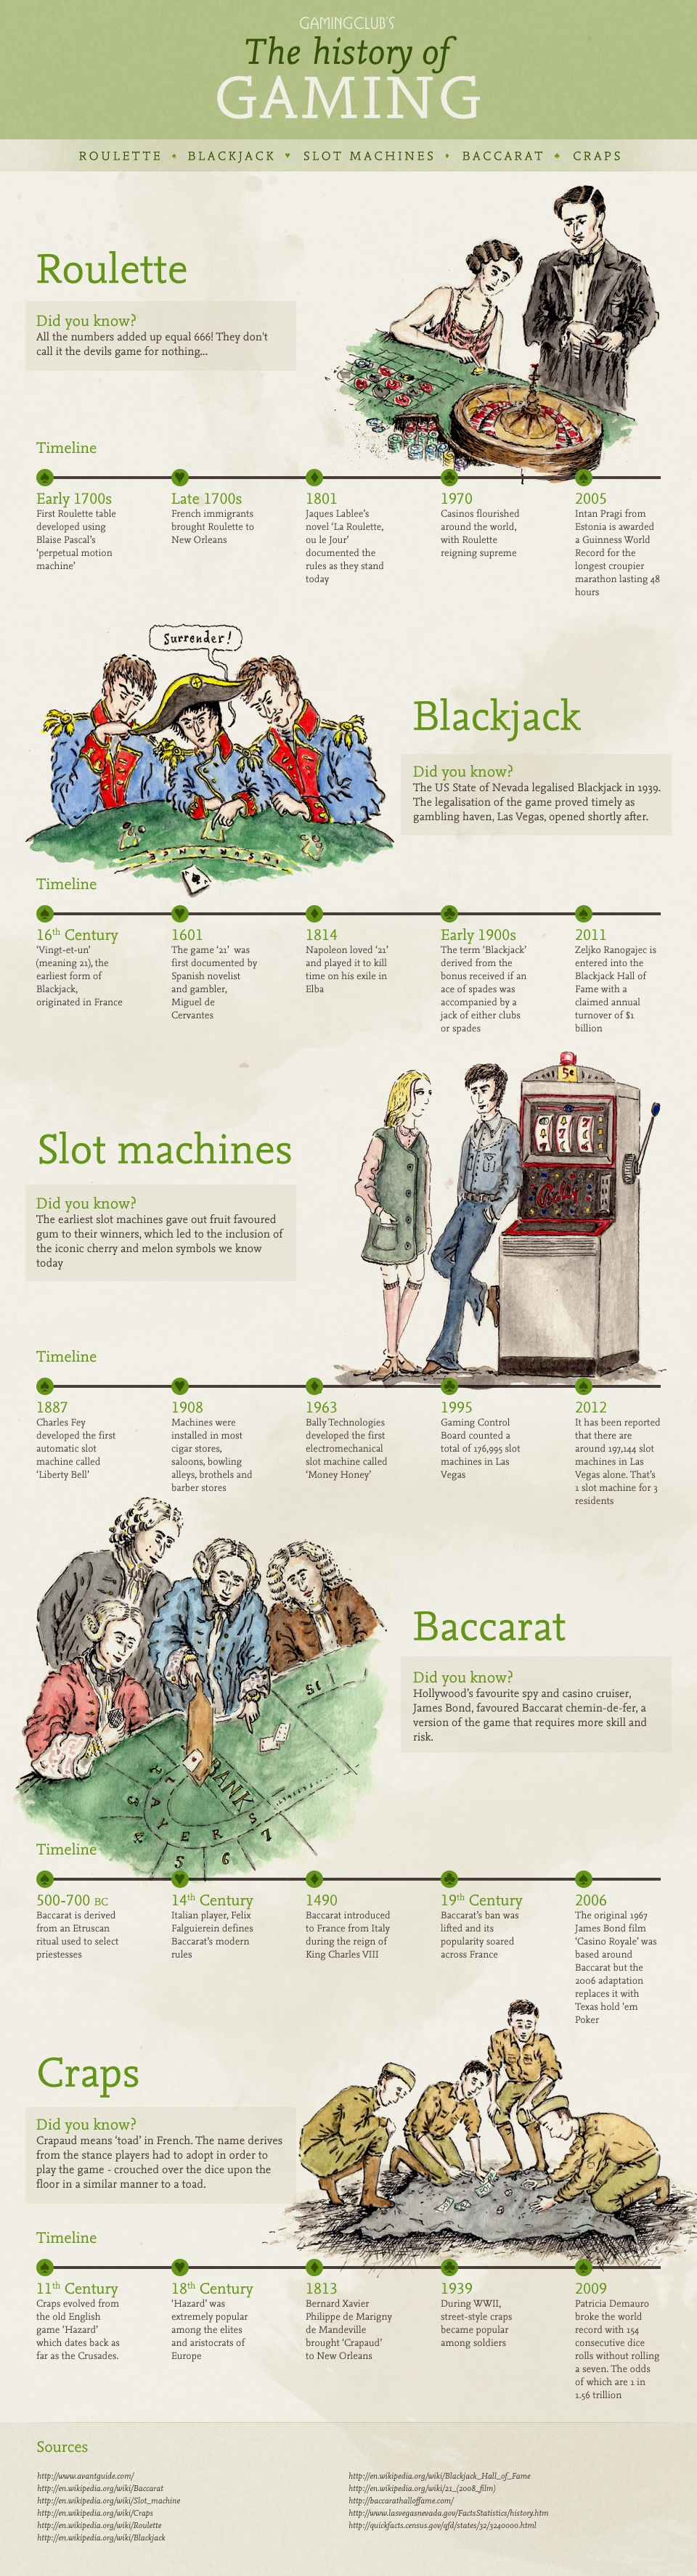 The History of Gaming (Infographic)